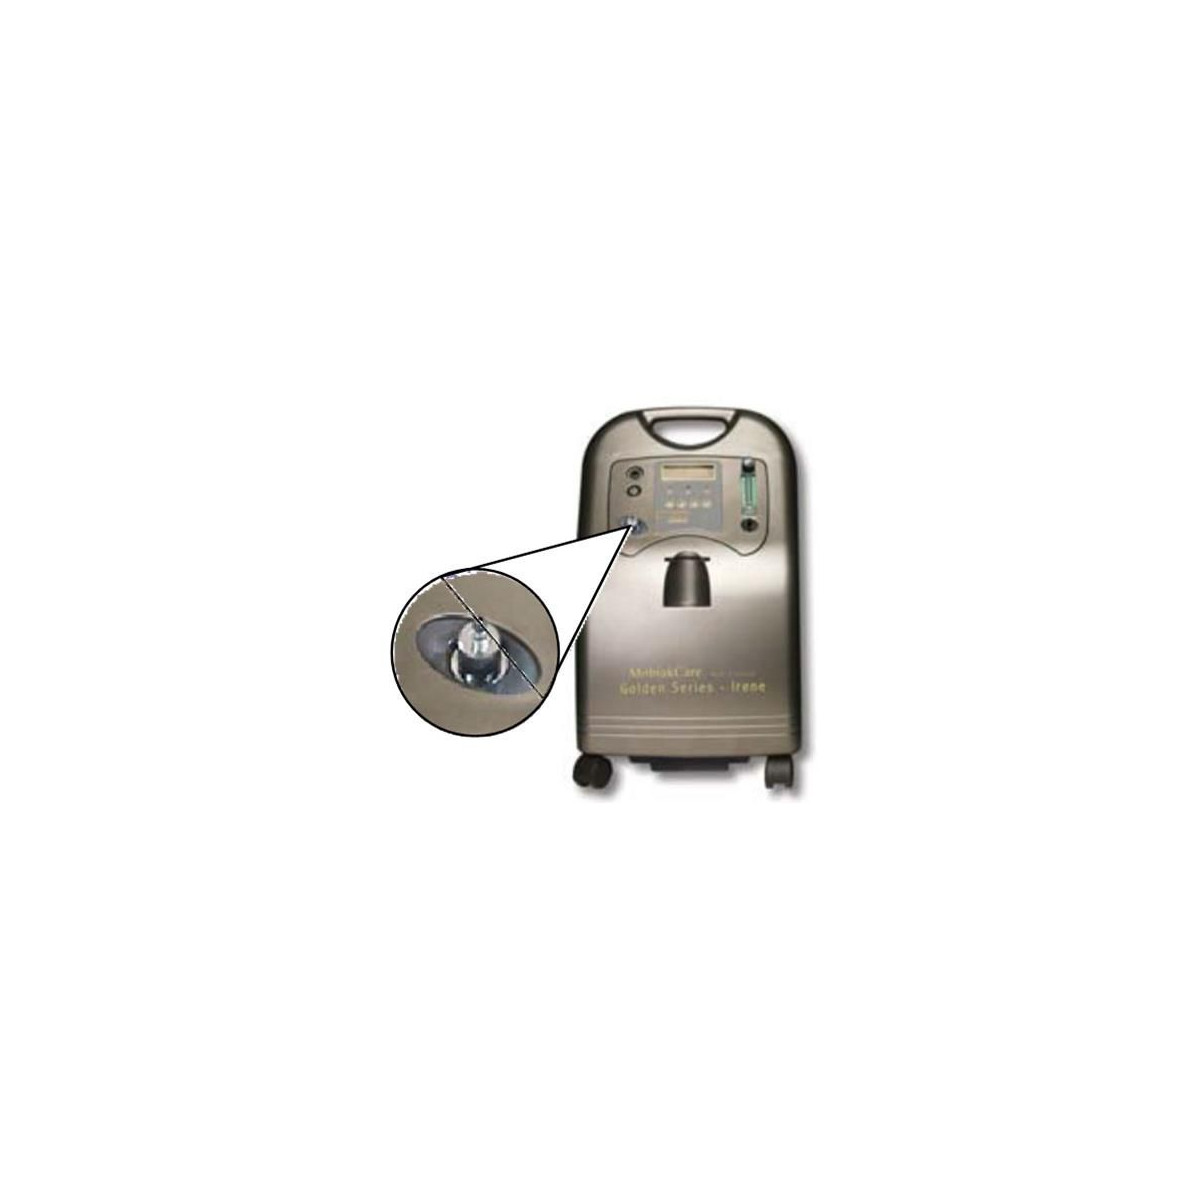 Oxygen Concentrator MobiakCare Irene Νeb 5lit